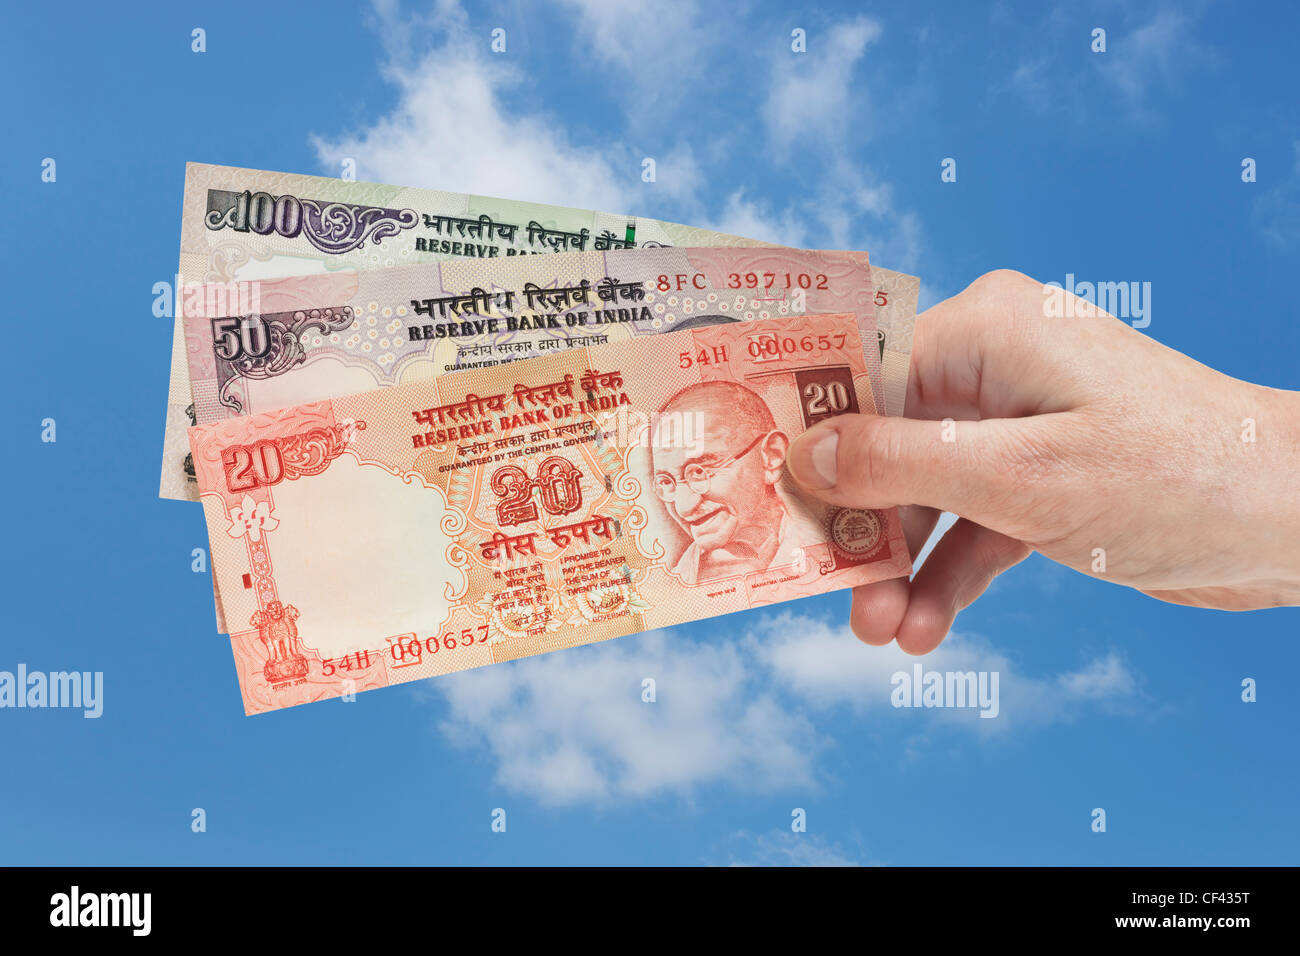 One 20. one 50 and one 100 Indian rupee bills with the portrait of Mahatma Gandhi are held in the hand. Sky is in - Stock Image